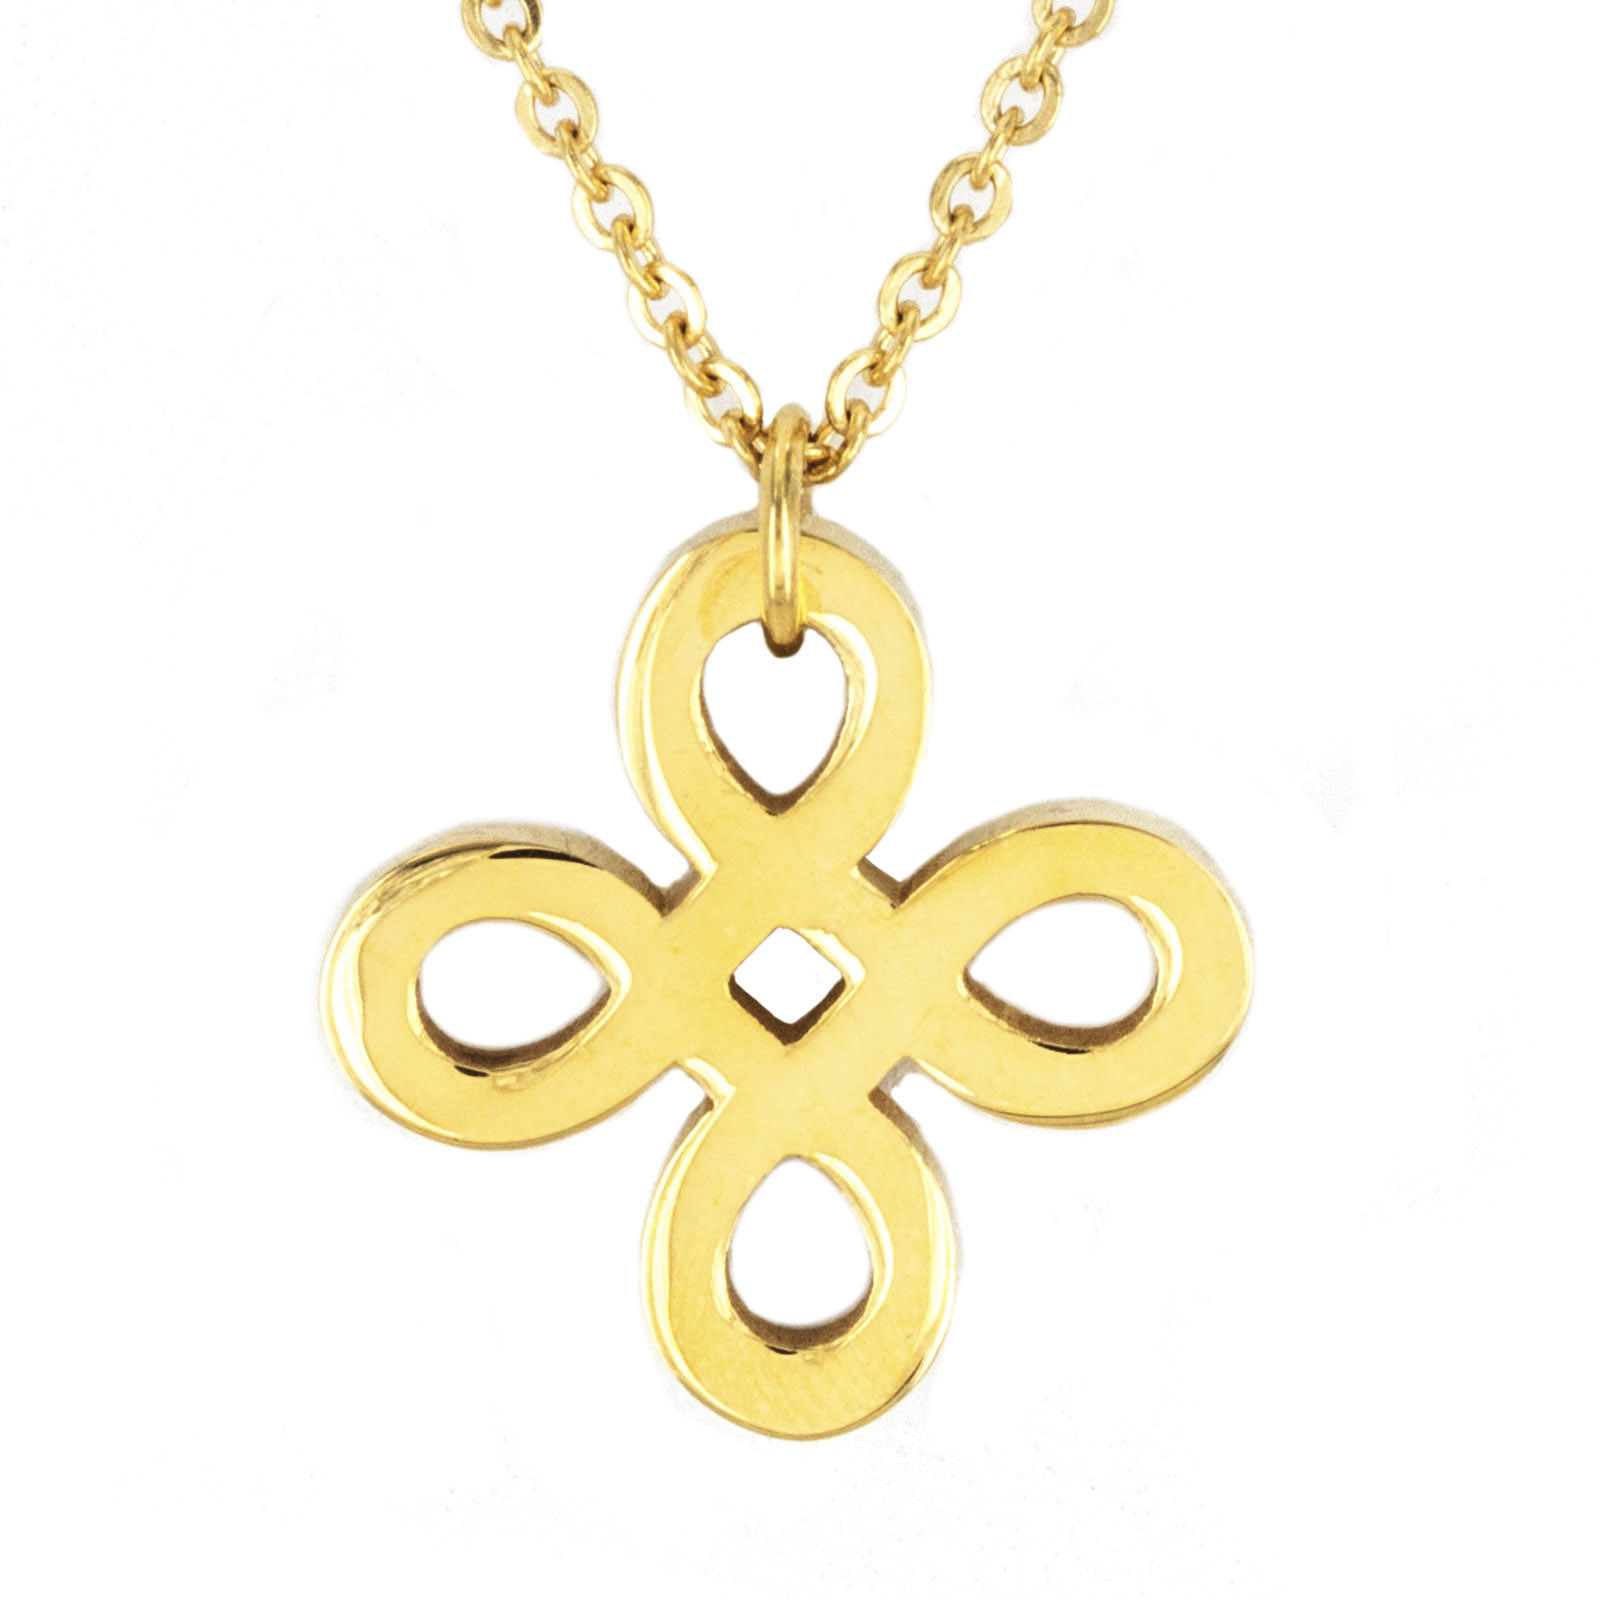 Gold Plated Stainless Steel Necklace With Pendant